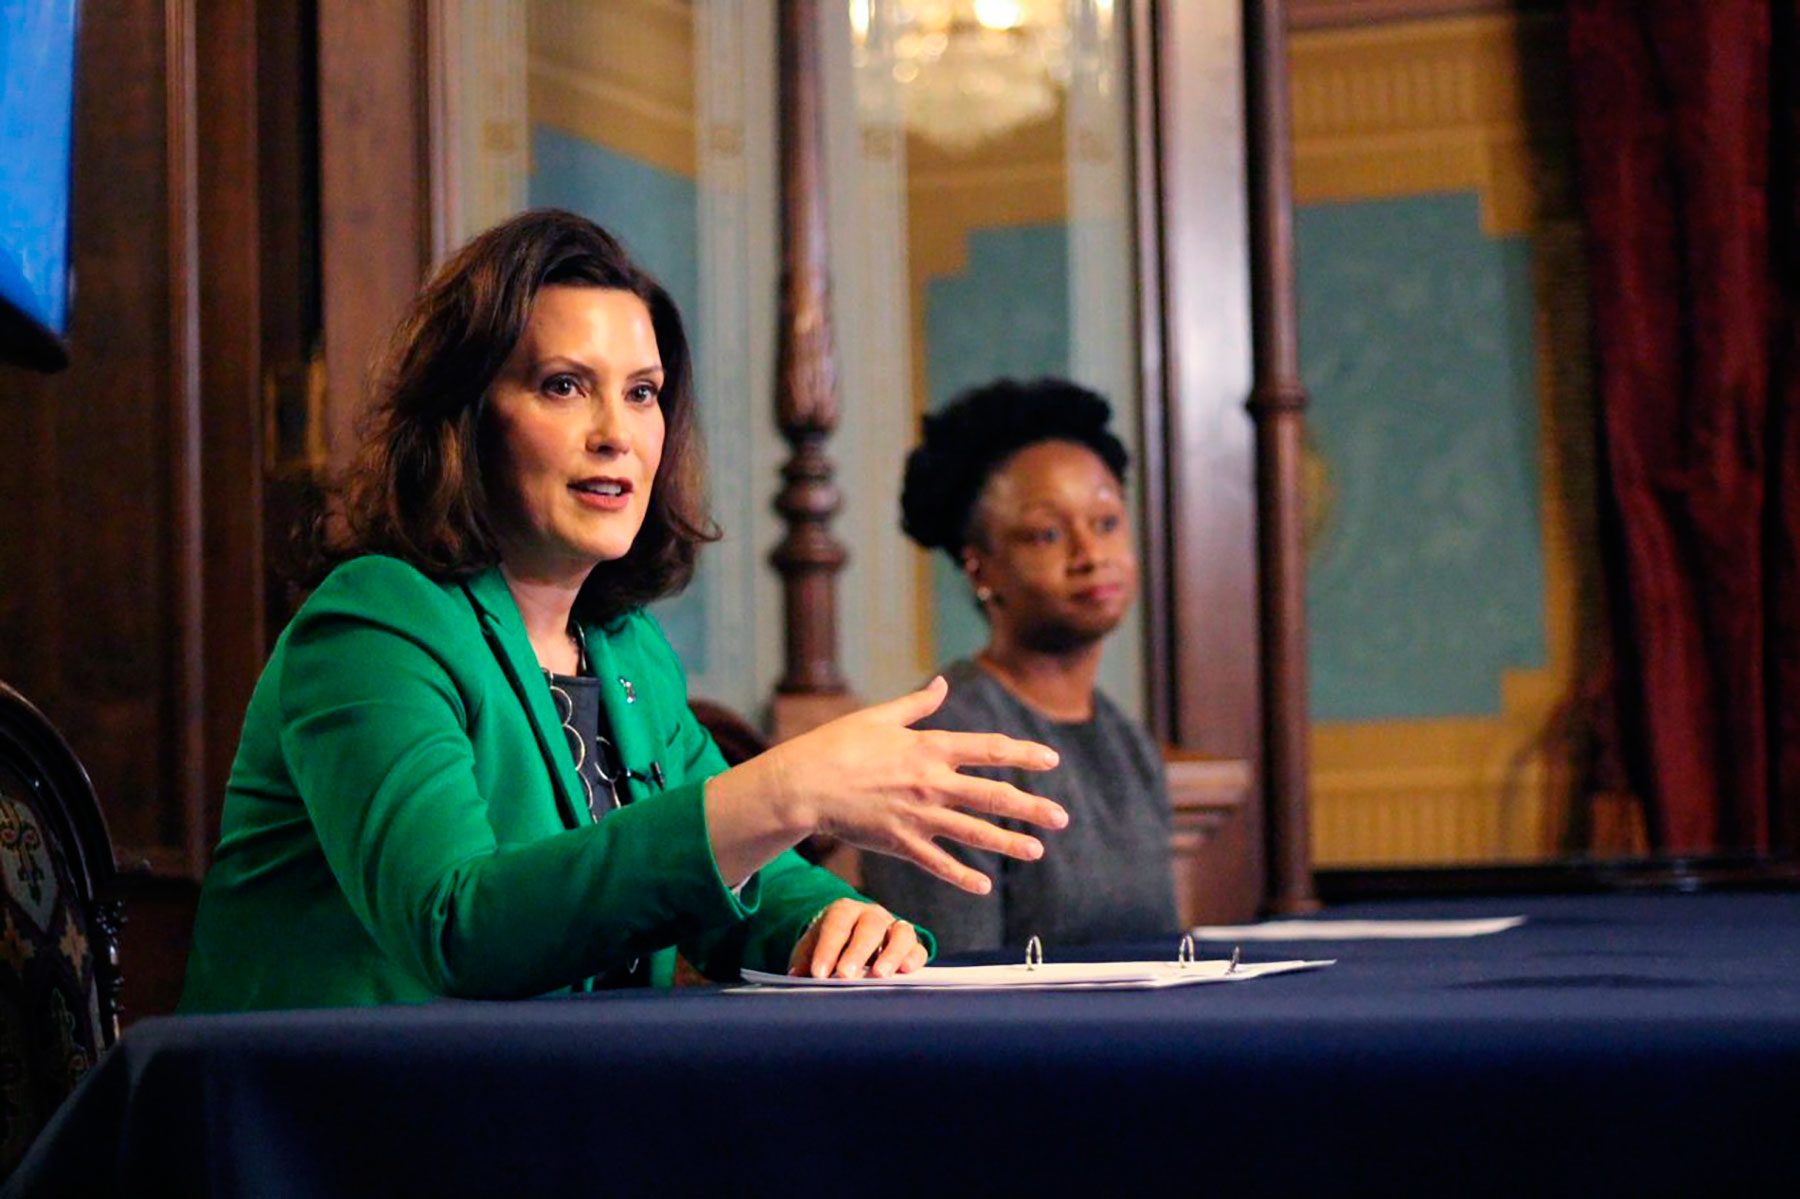 Gov. Gretchen Whitmer gives a speech on April 9, in Lansing, Michigan.